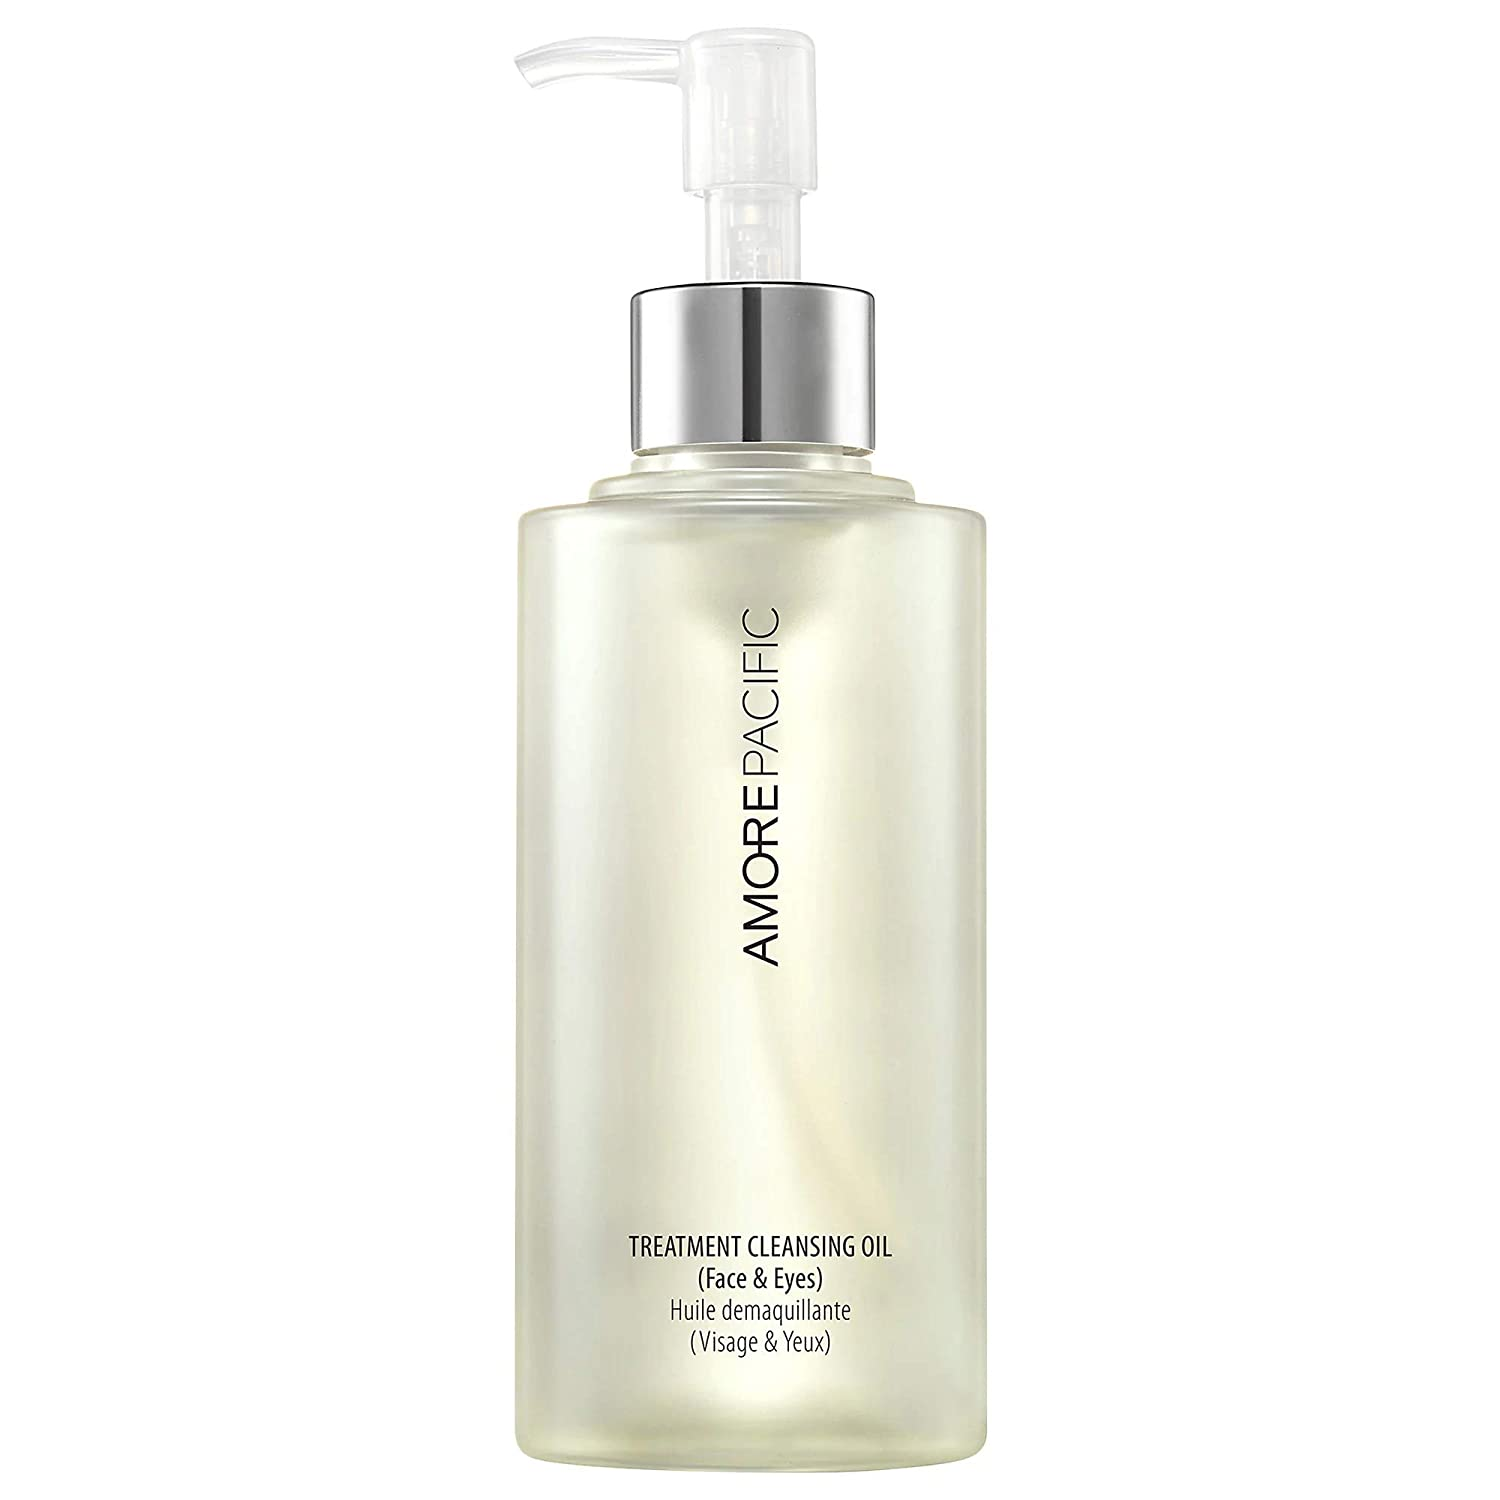 AMOREPACIFIC Treatment Cleansing Oil Makeup Remover Facial Cleanser